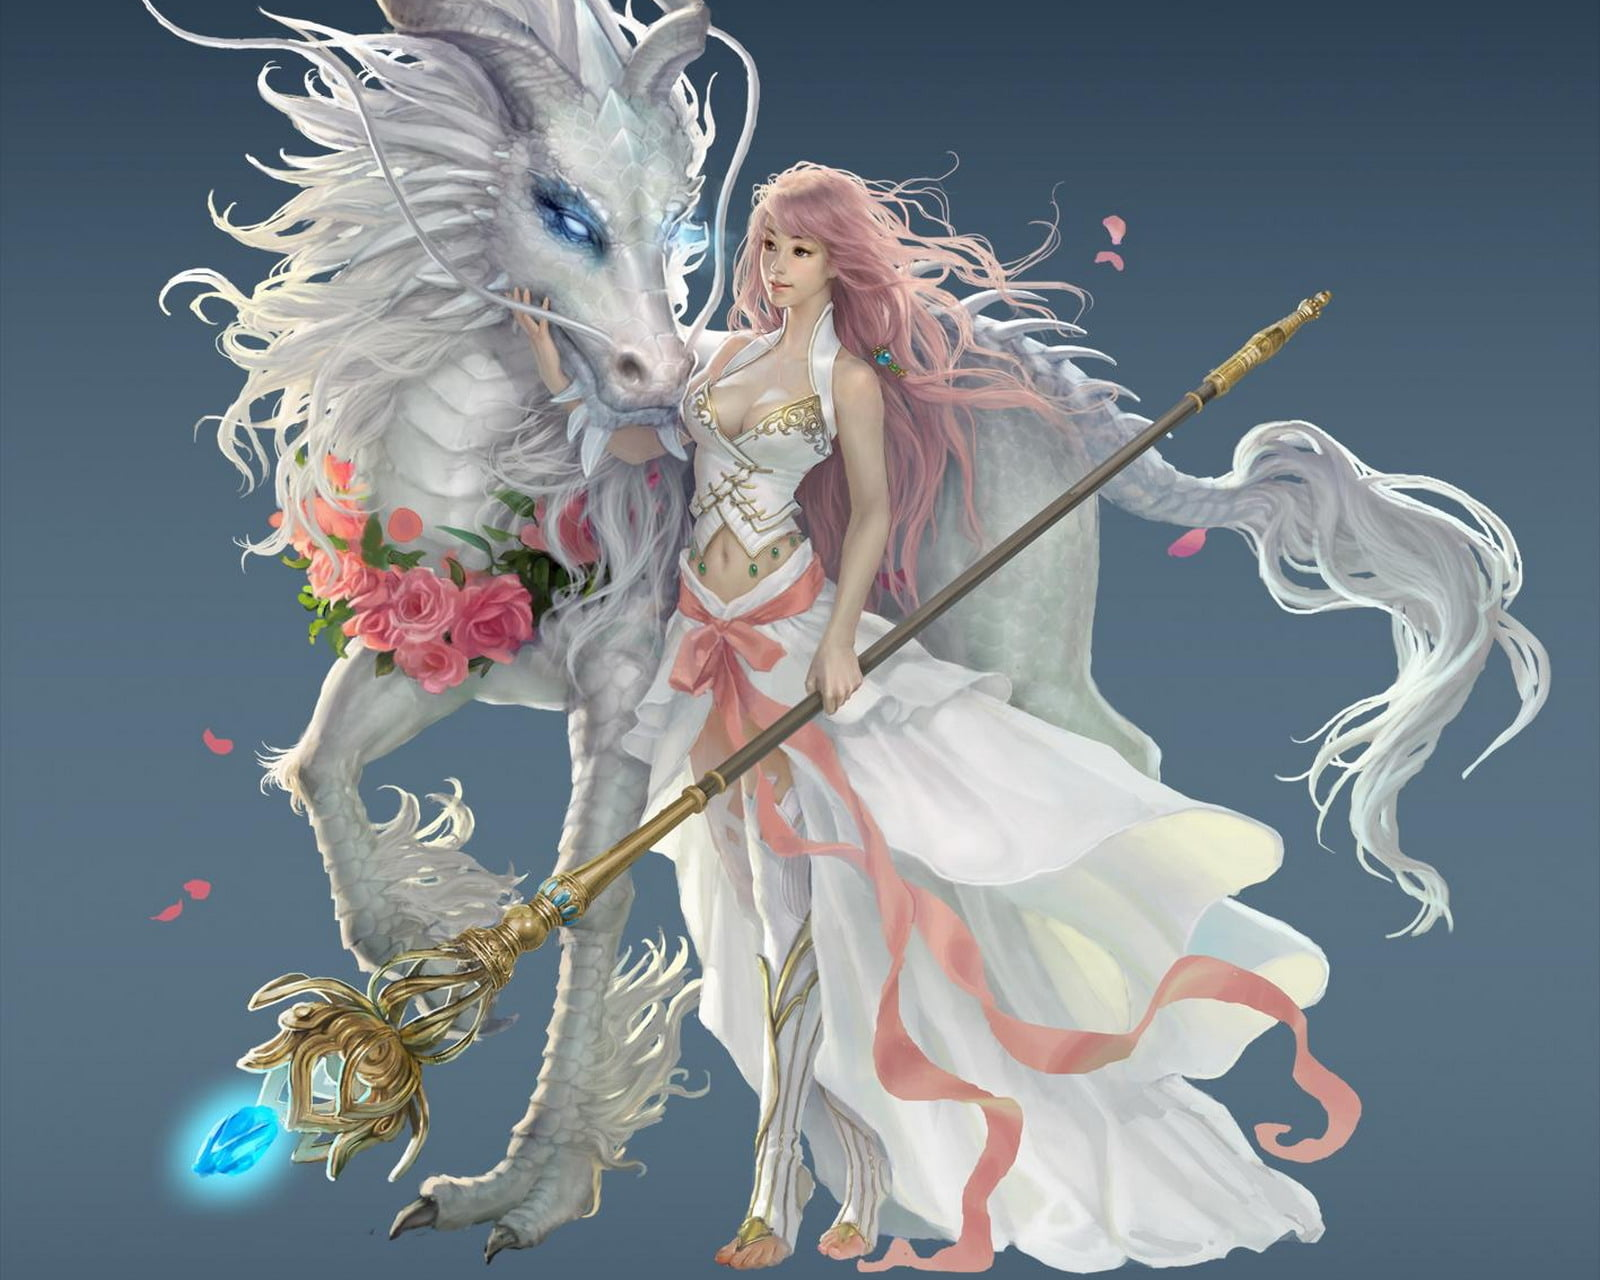 Iphone 2g Wallpaper For Iphone X Female Anime Character Wearing White Dress Beside White